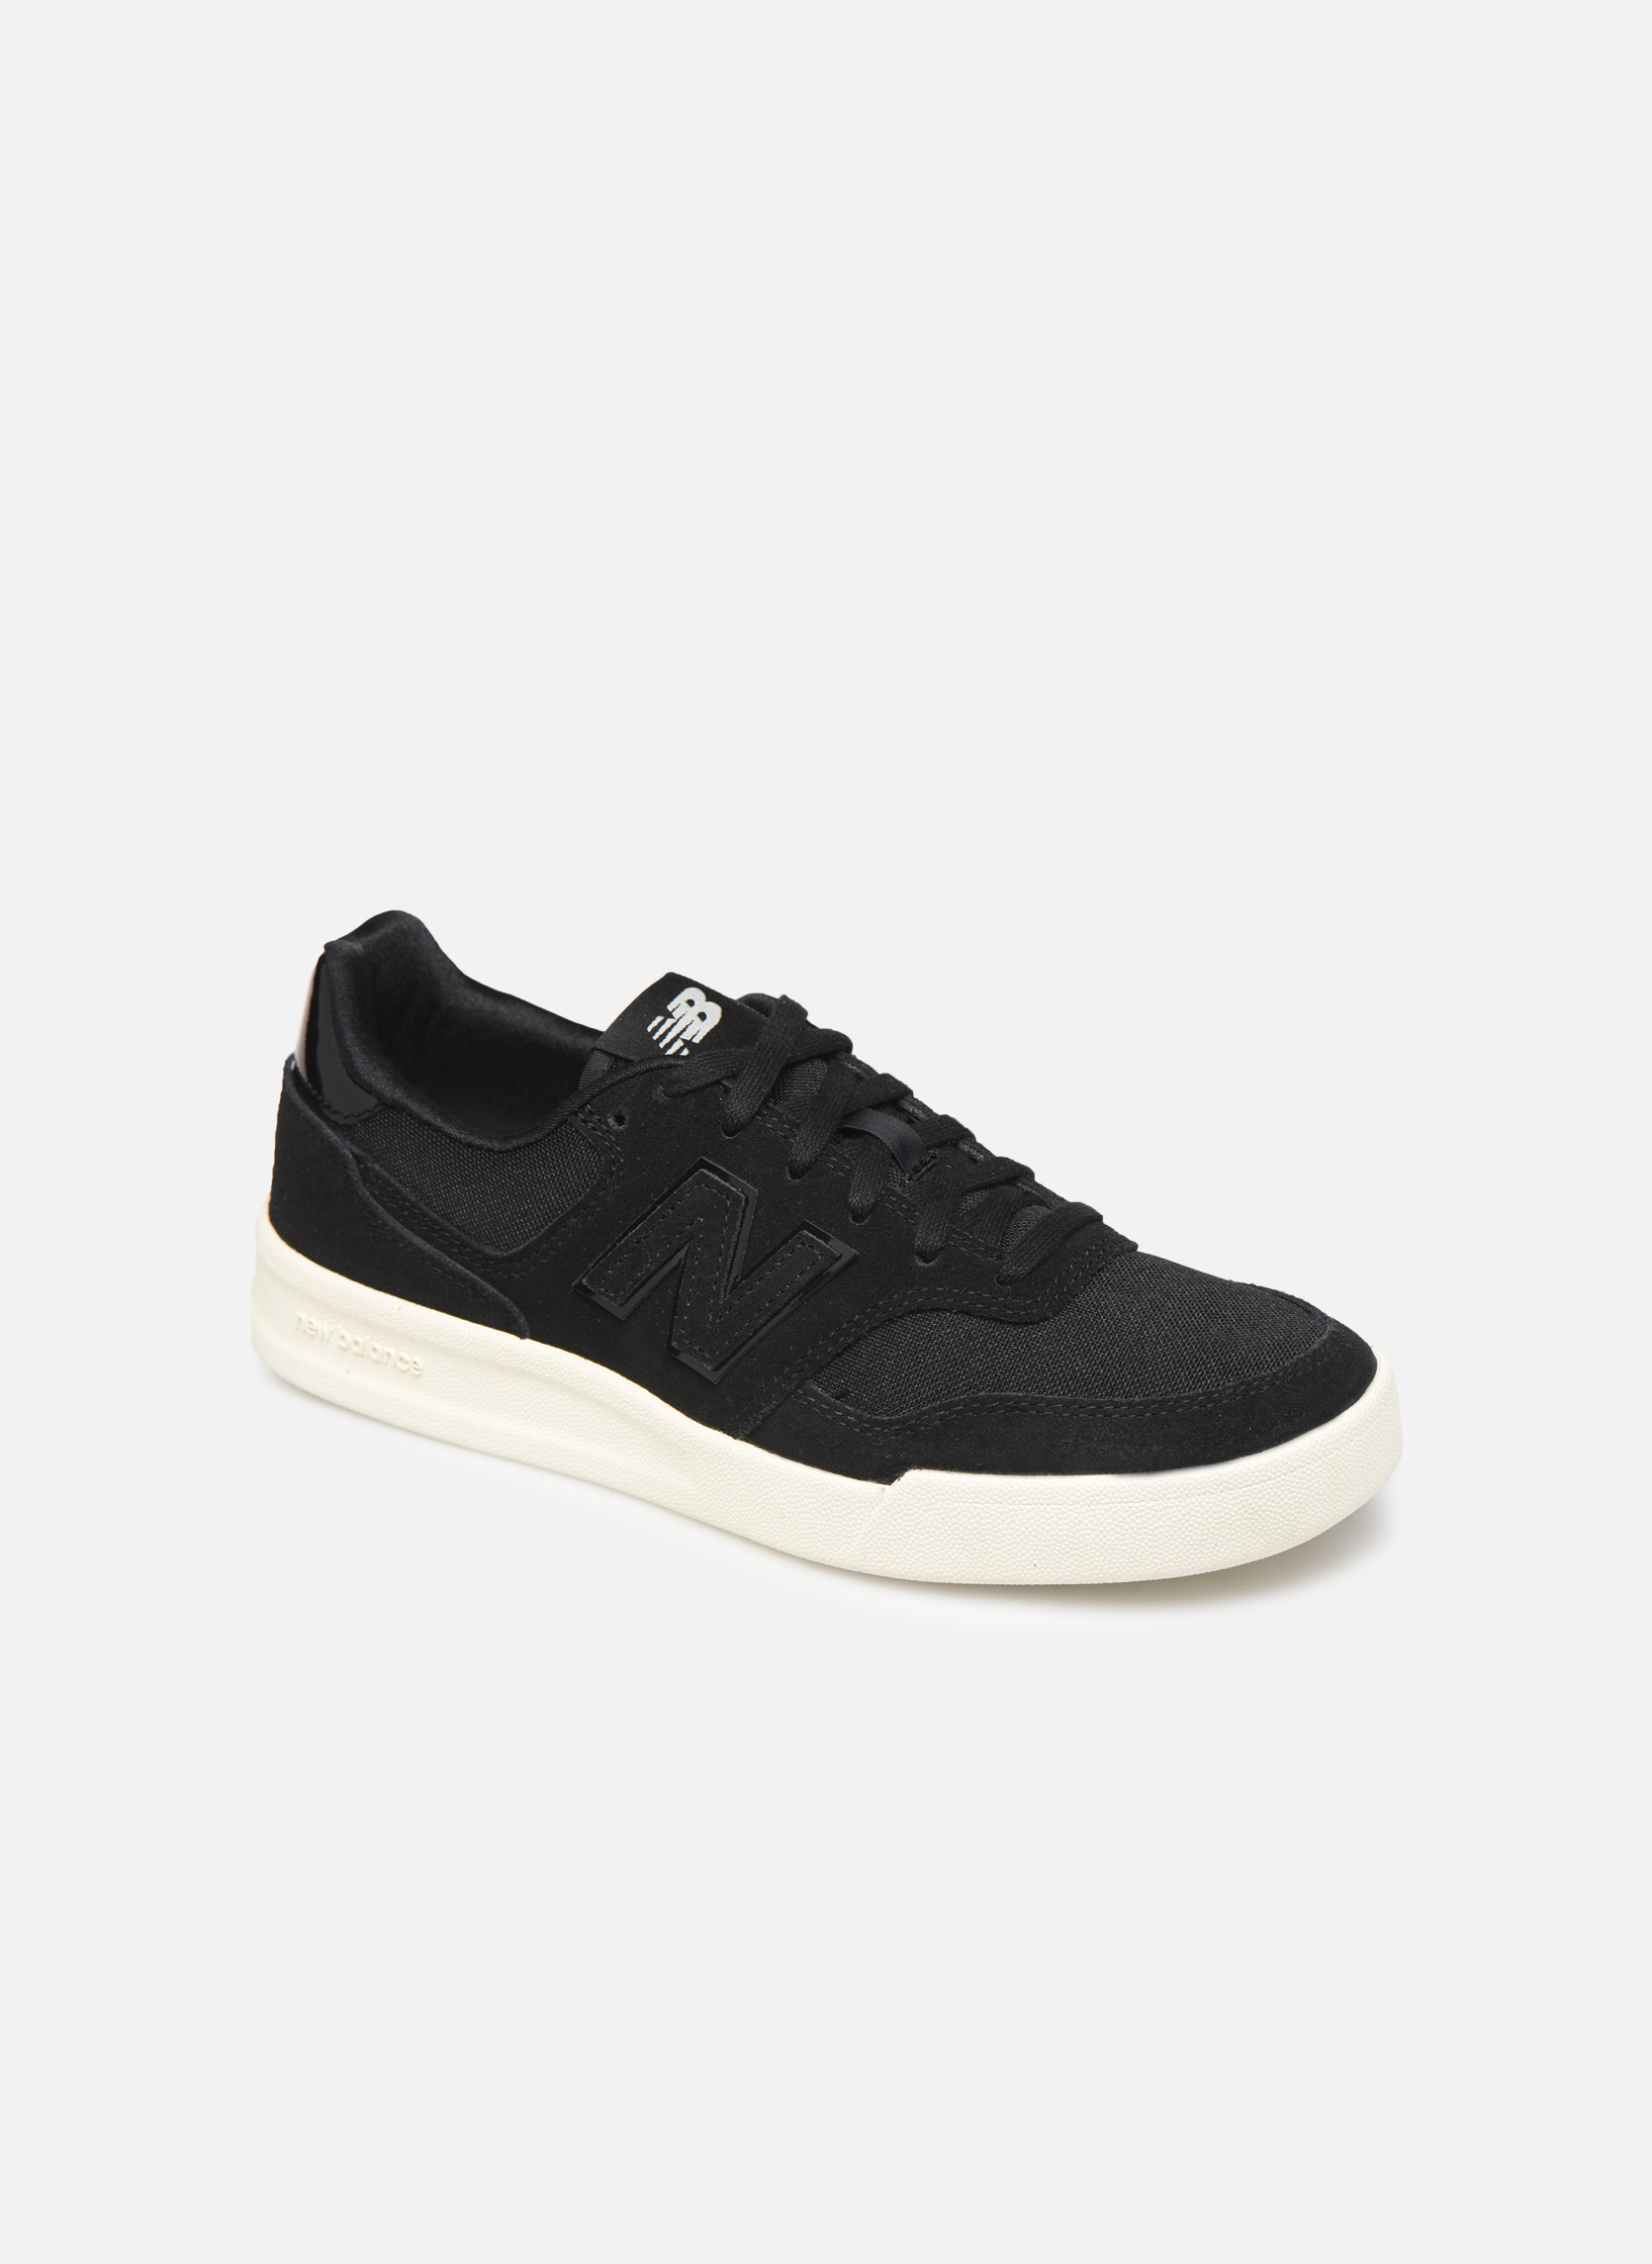 Sneakers WRT300 by New Balance